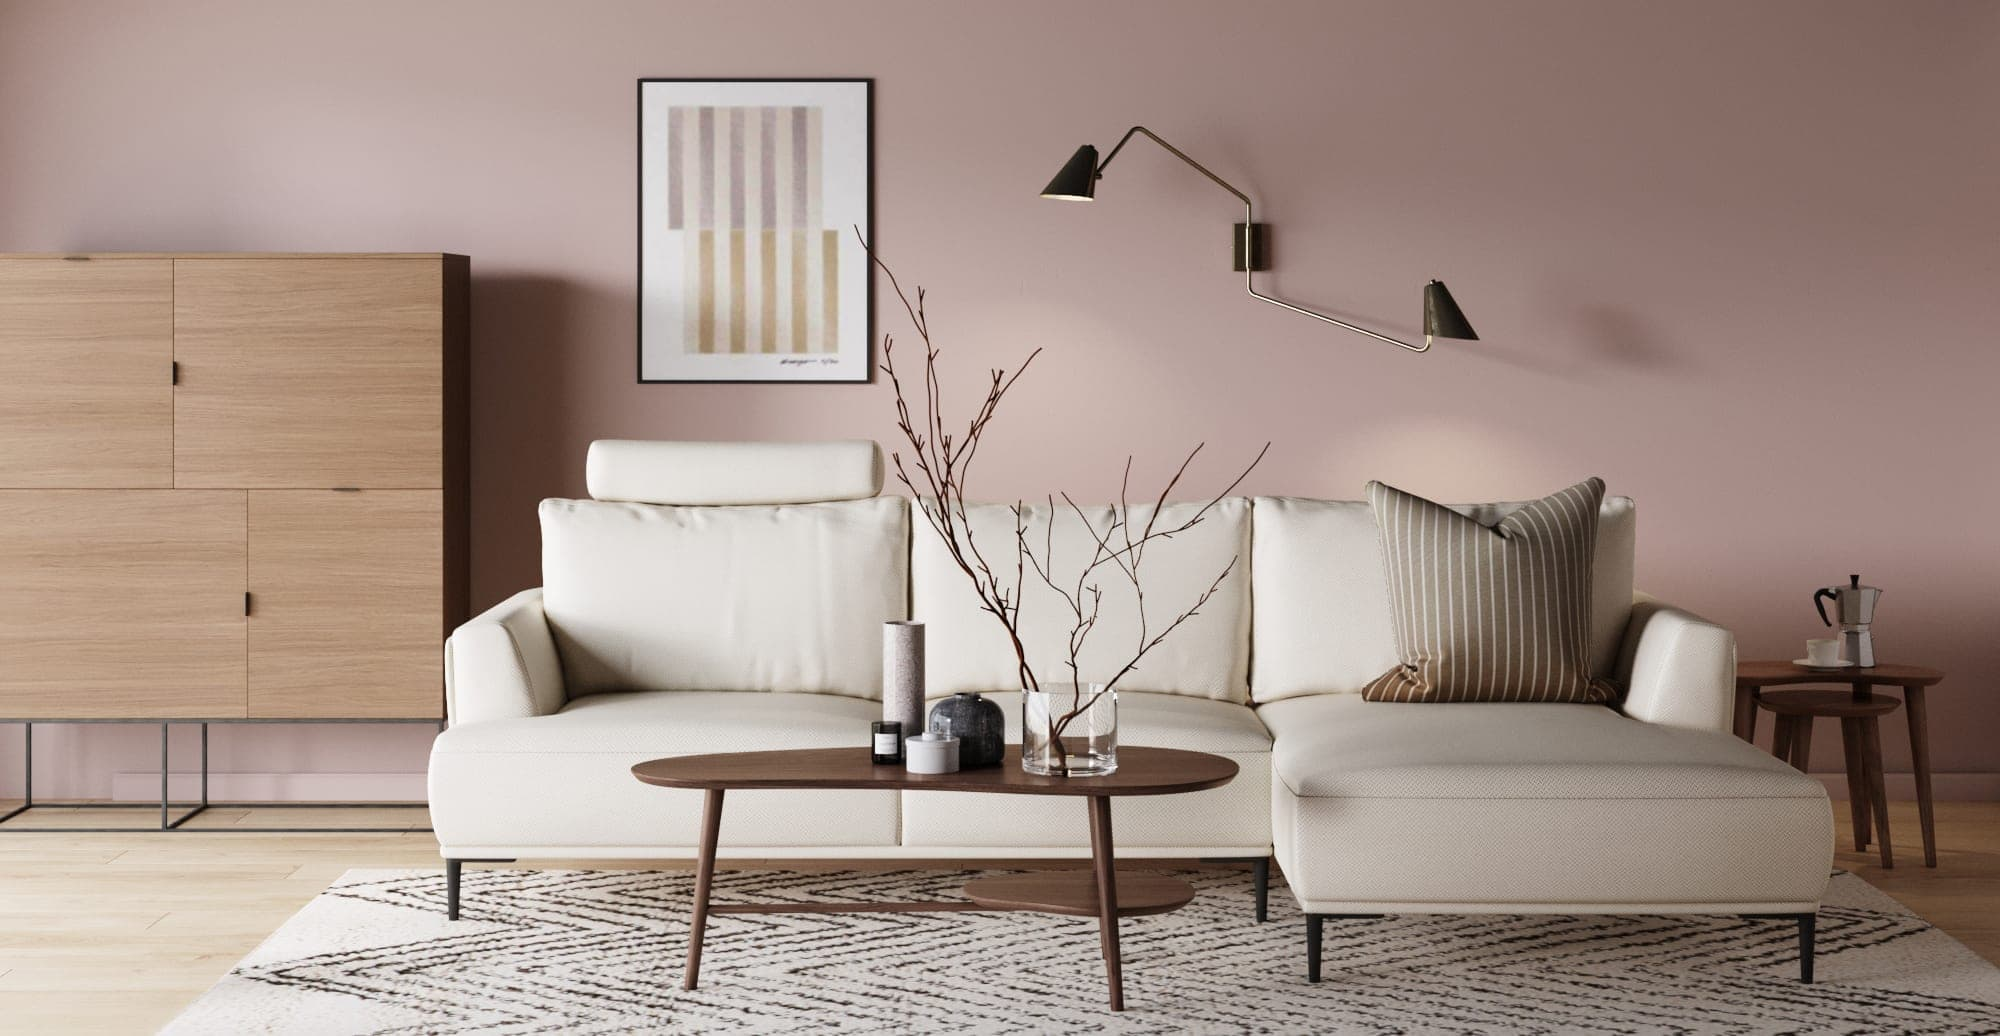 brosa como white sofa in pink living room with minimalist interior design